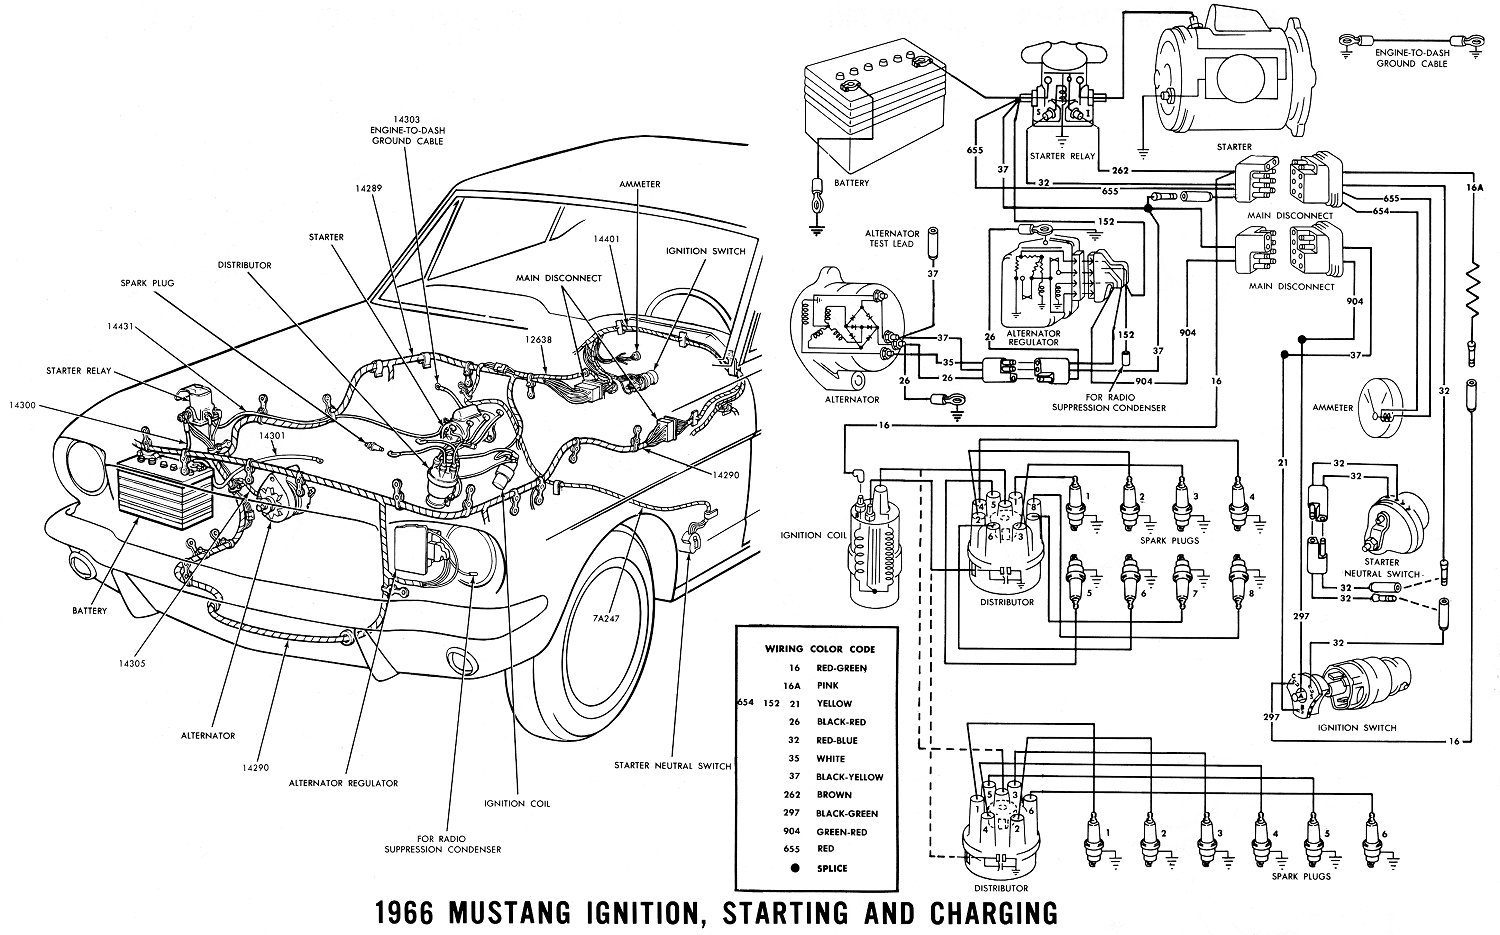 Free Auto Wiring Diagram Mustang Ignition Wiring Diagram